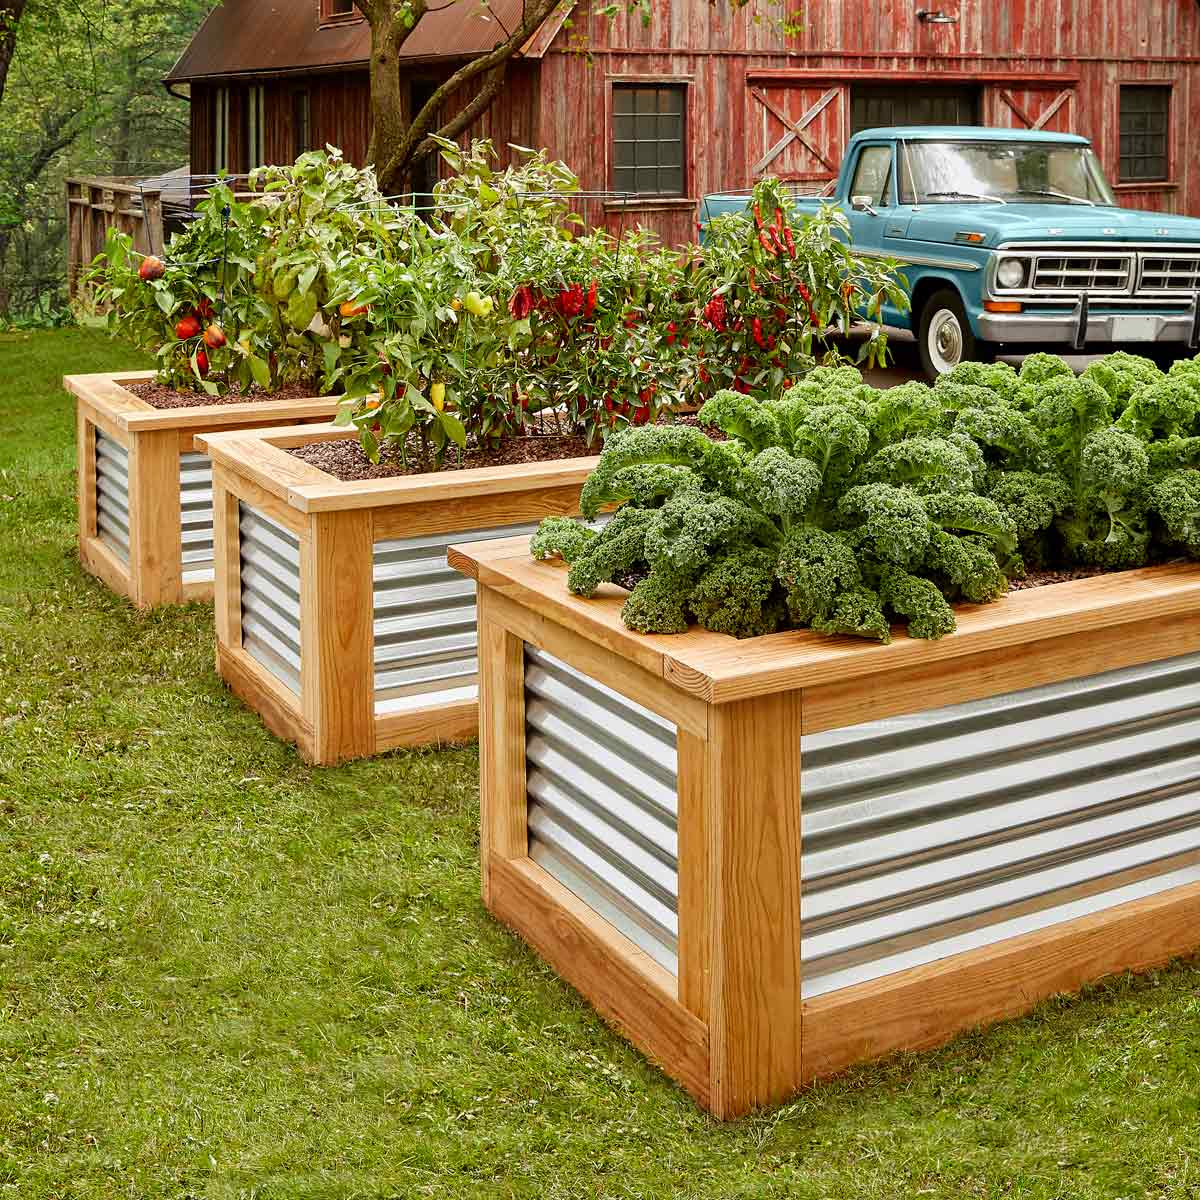 How To Build Raised Garden Beds Family Handyman The Family Handyman throughout 13 Clever Initiatives of How to Make Backyard Raised Garden Ideas